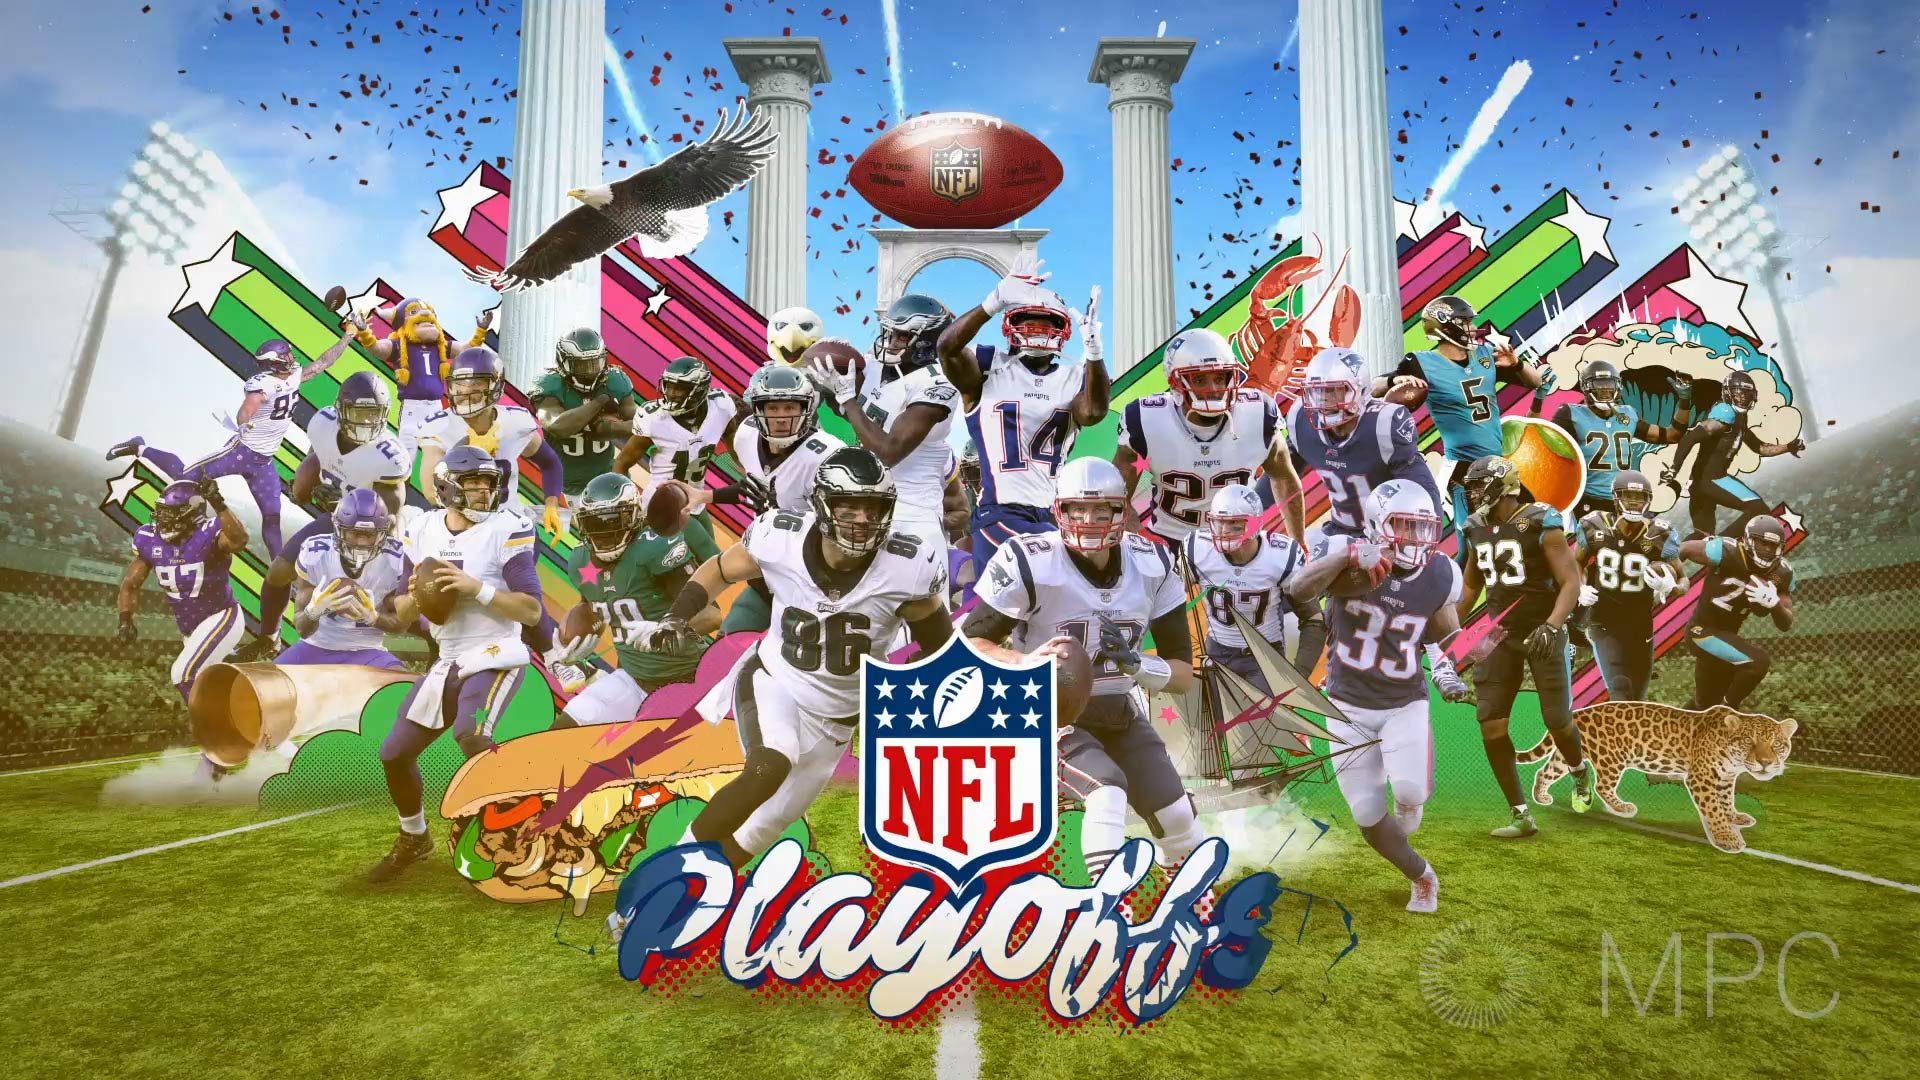 NFL PLAYOFF PICTURE_18.jpg